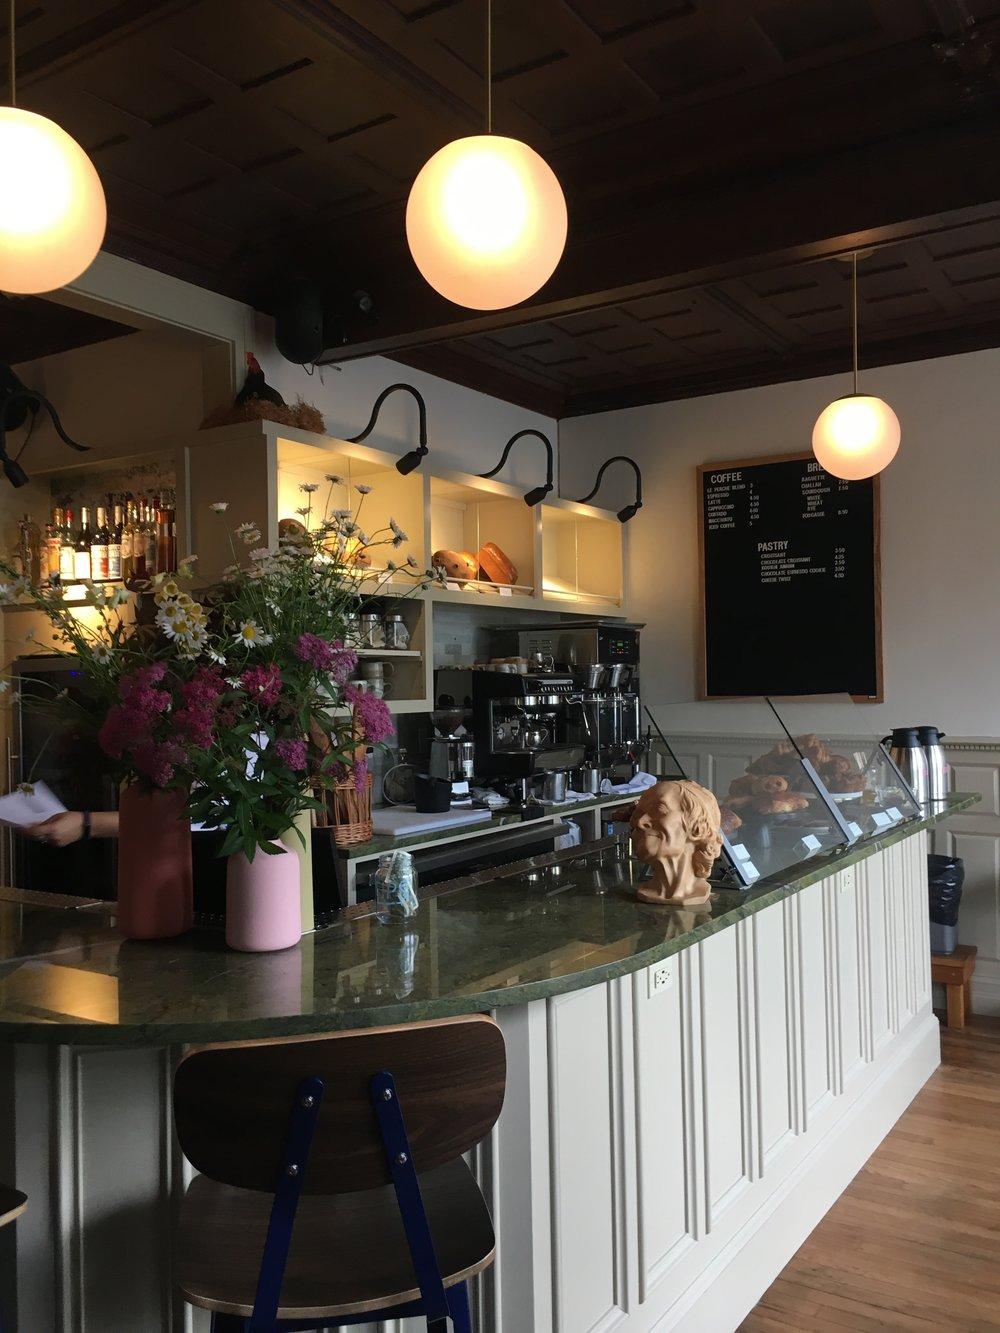 Cafe Le Perche - What to See, Do, and Eat in Hudson, NY - wear she blossoms